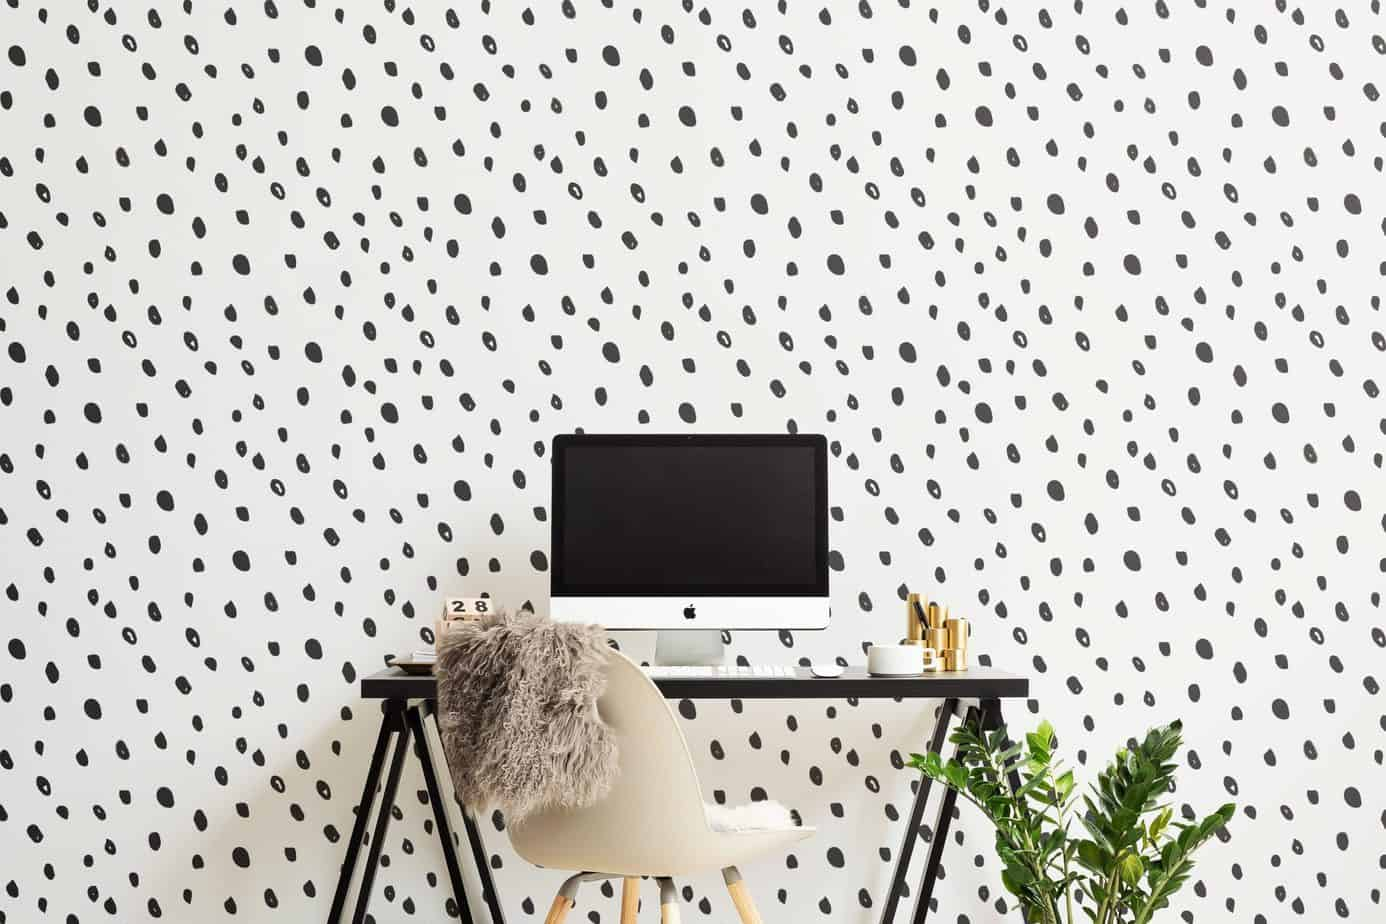 popular wallpaper for home office 2021 dalmatian print